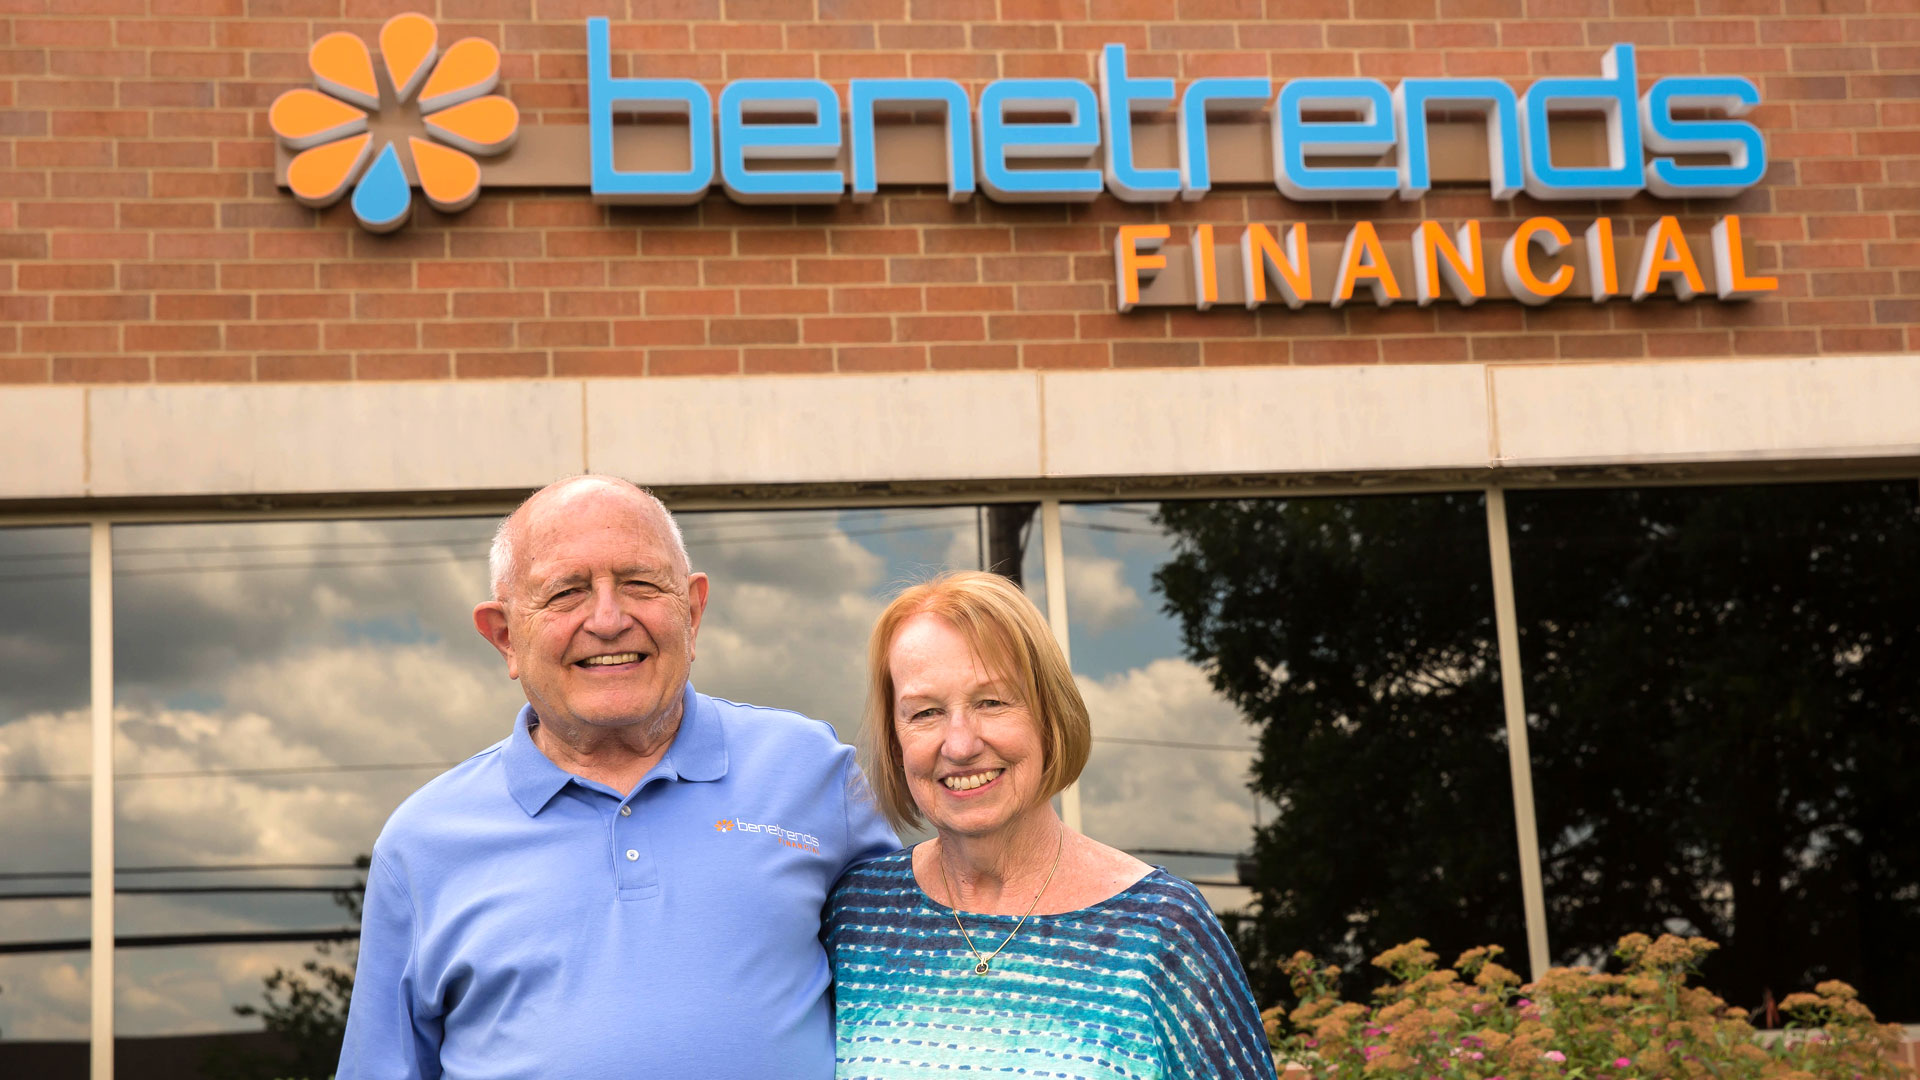 Benetrends Financial Founders